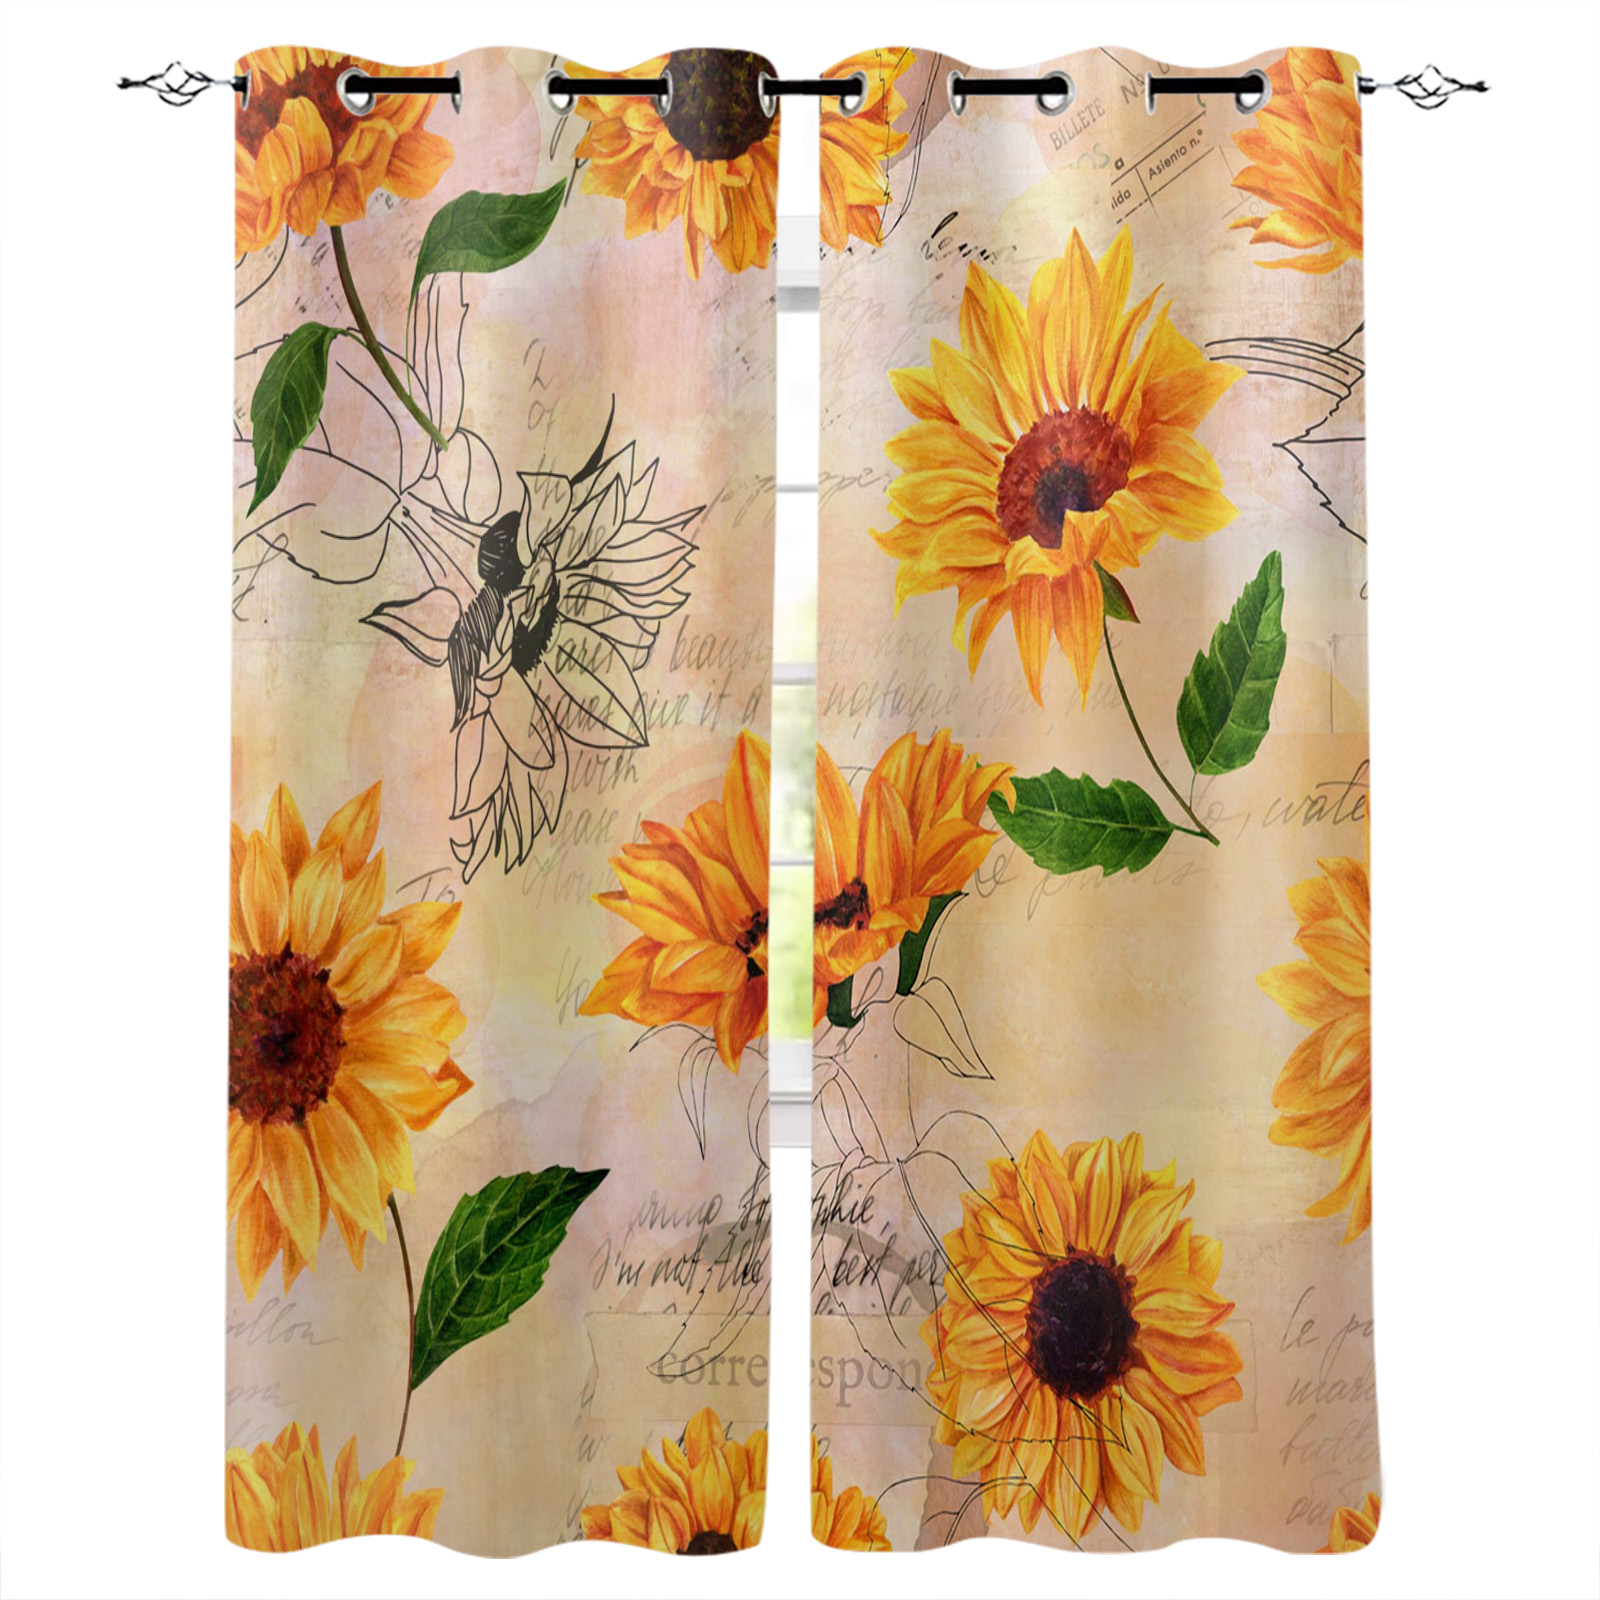 Sunflower Window Curtains Kitchen Drapes Panel Home Decor For Living Room Bedroom Big Discount A3bac0 Cicig